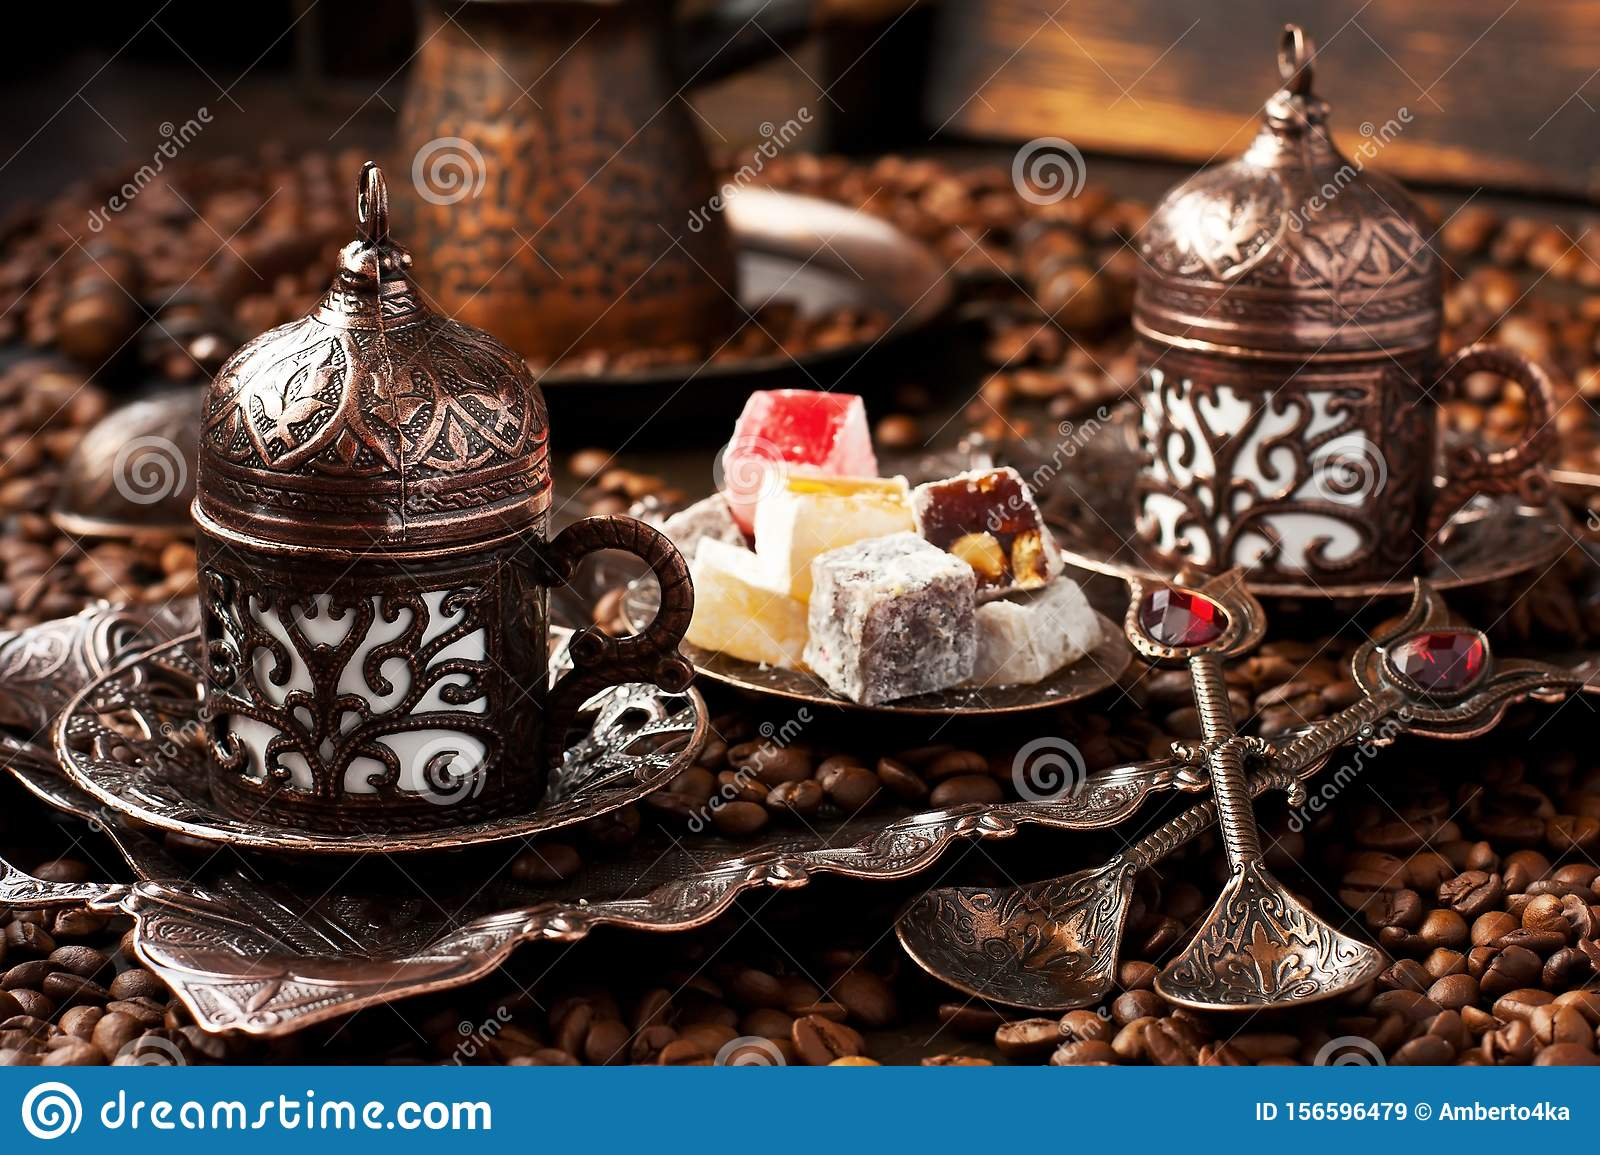 Traditionally served Turkish coffee with eastern sweets